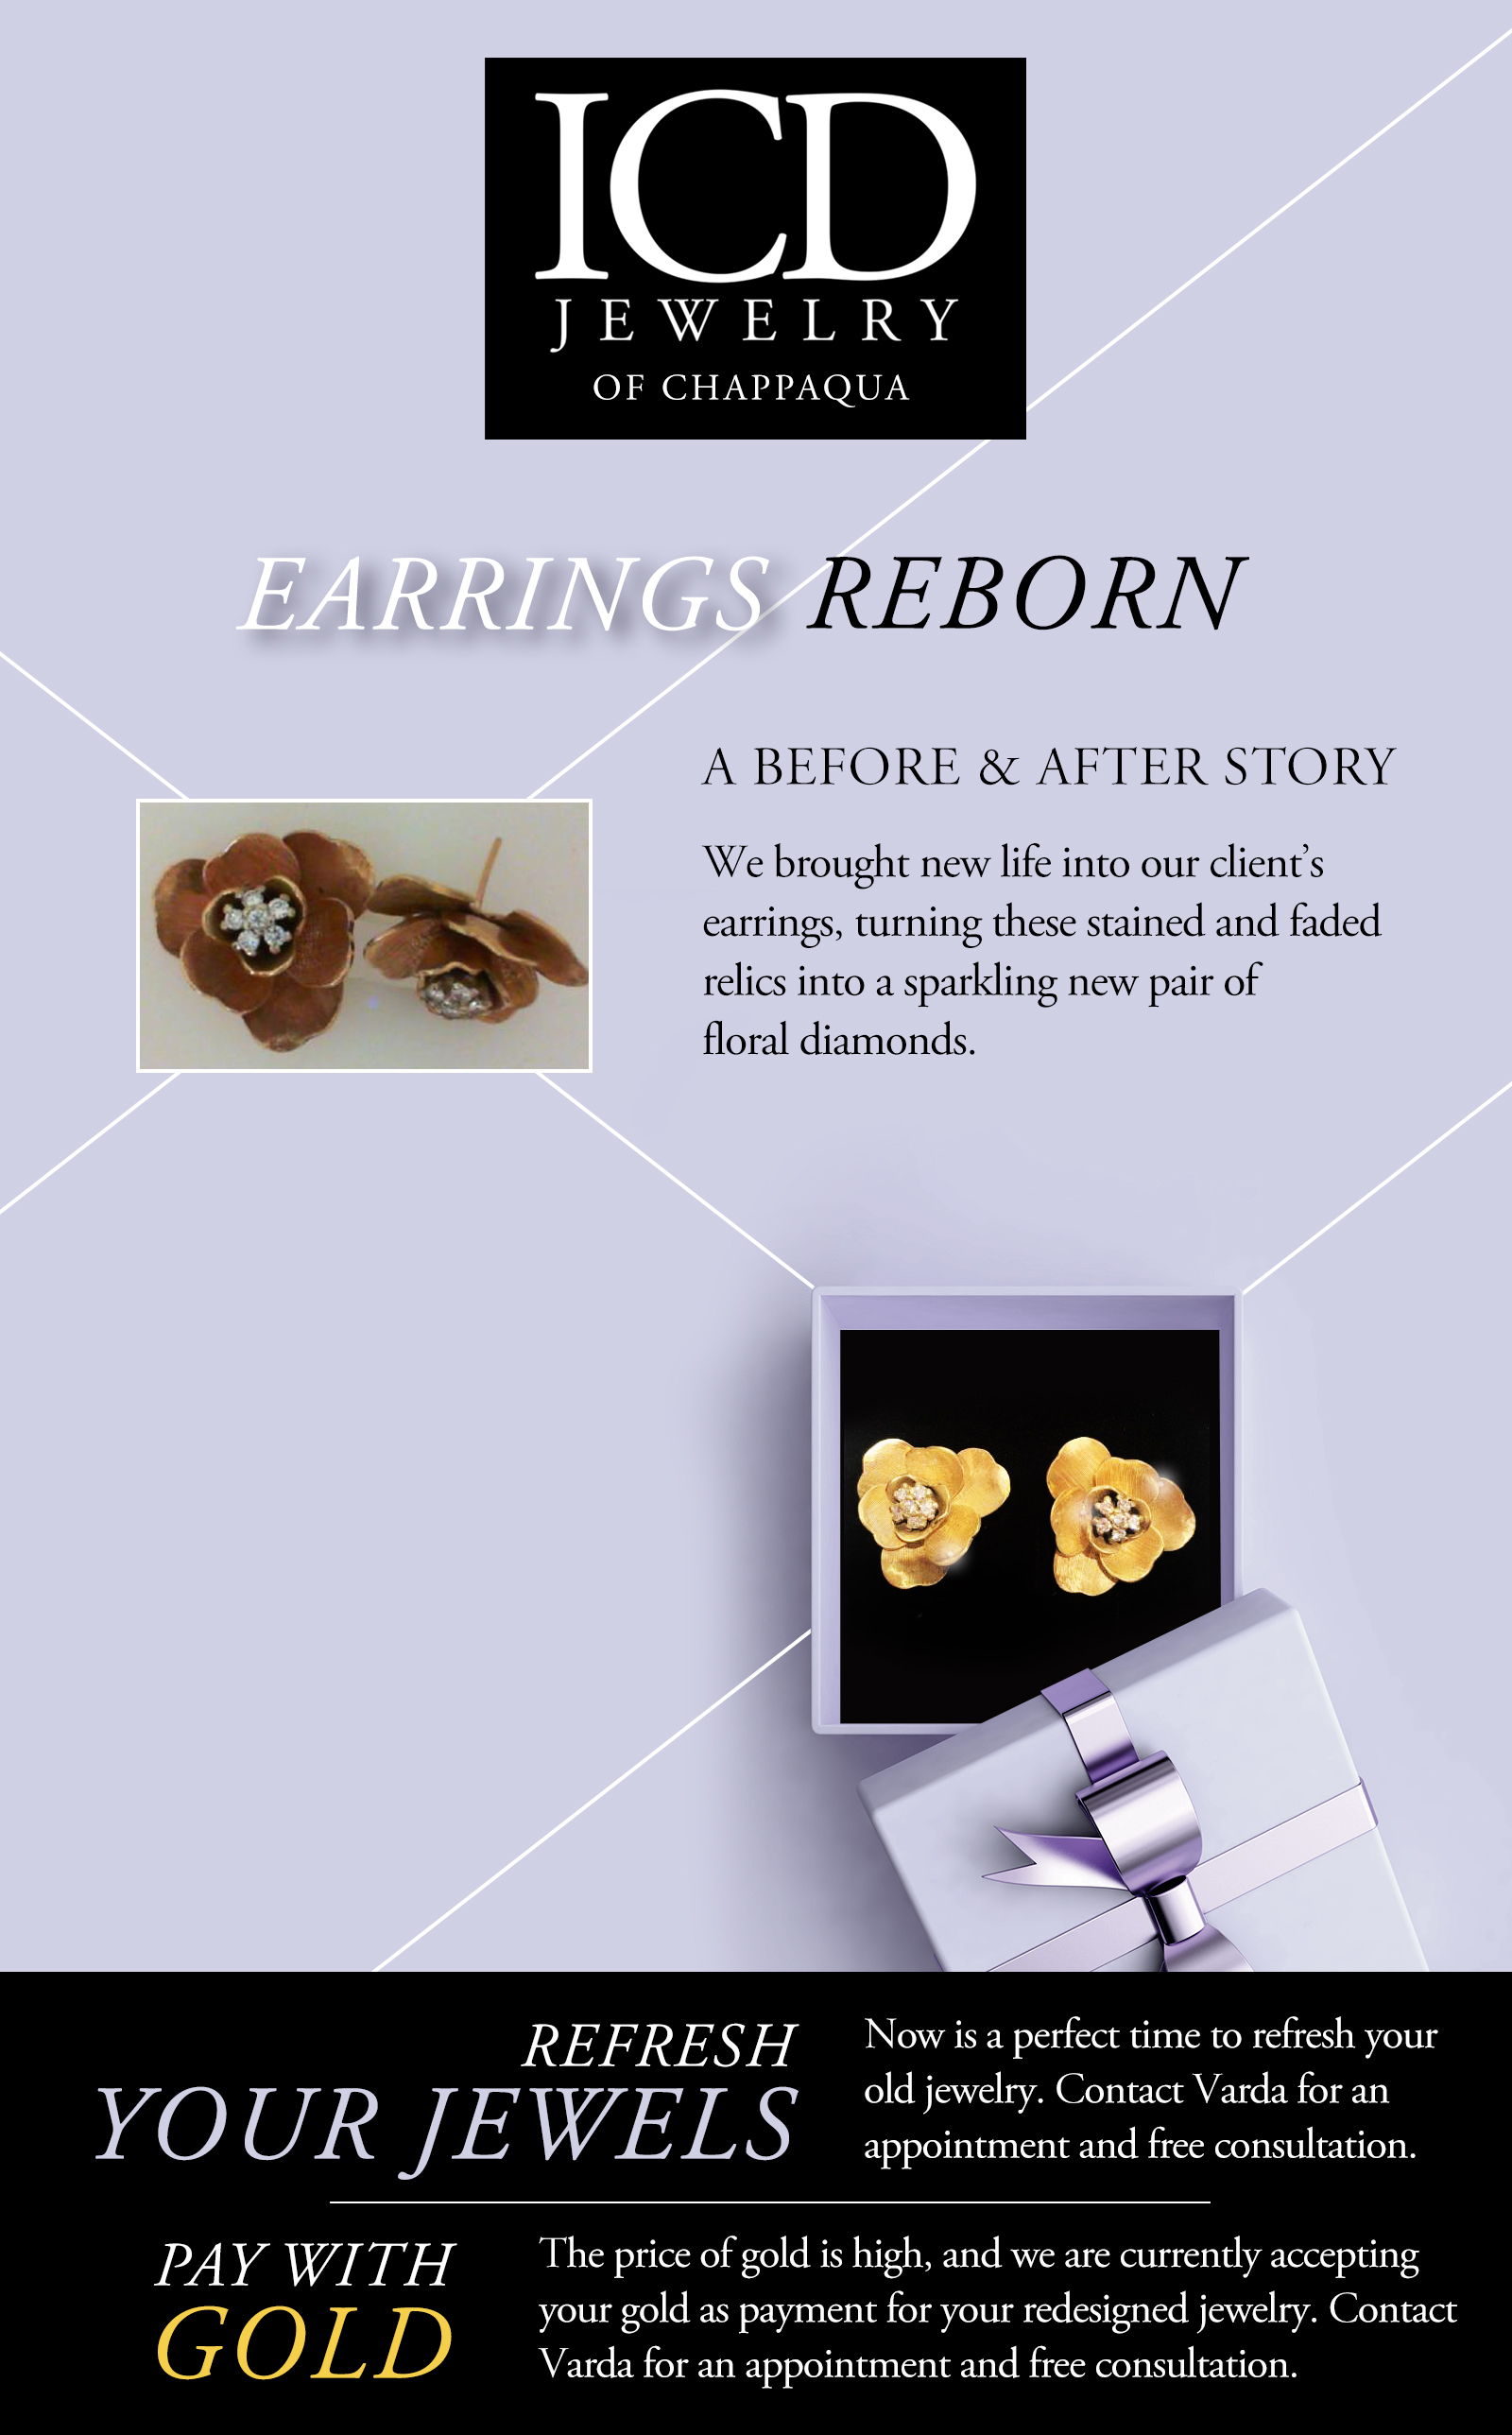 Earrings Reborn